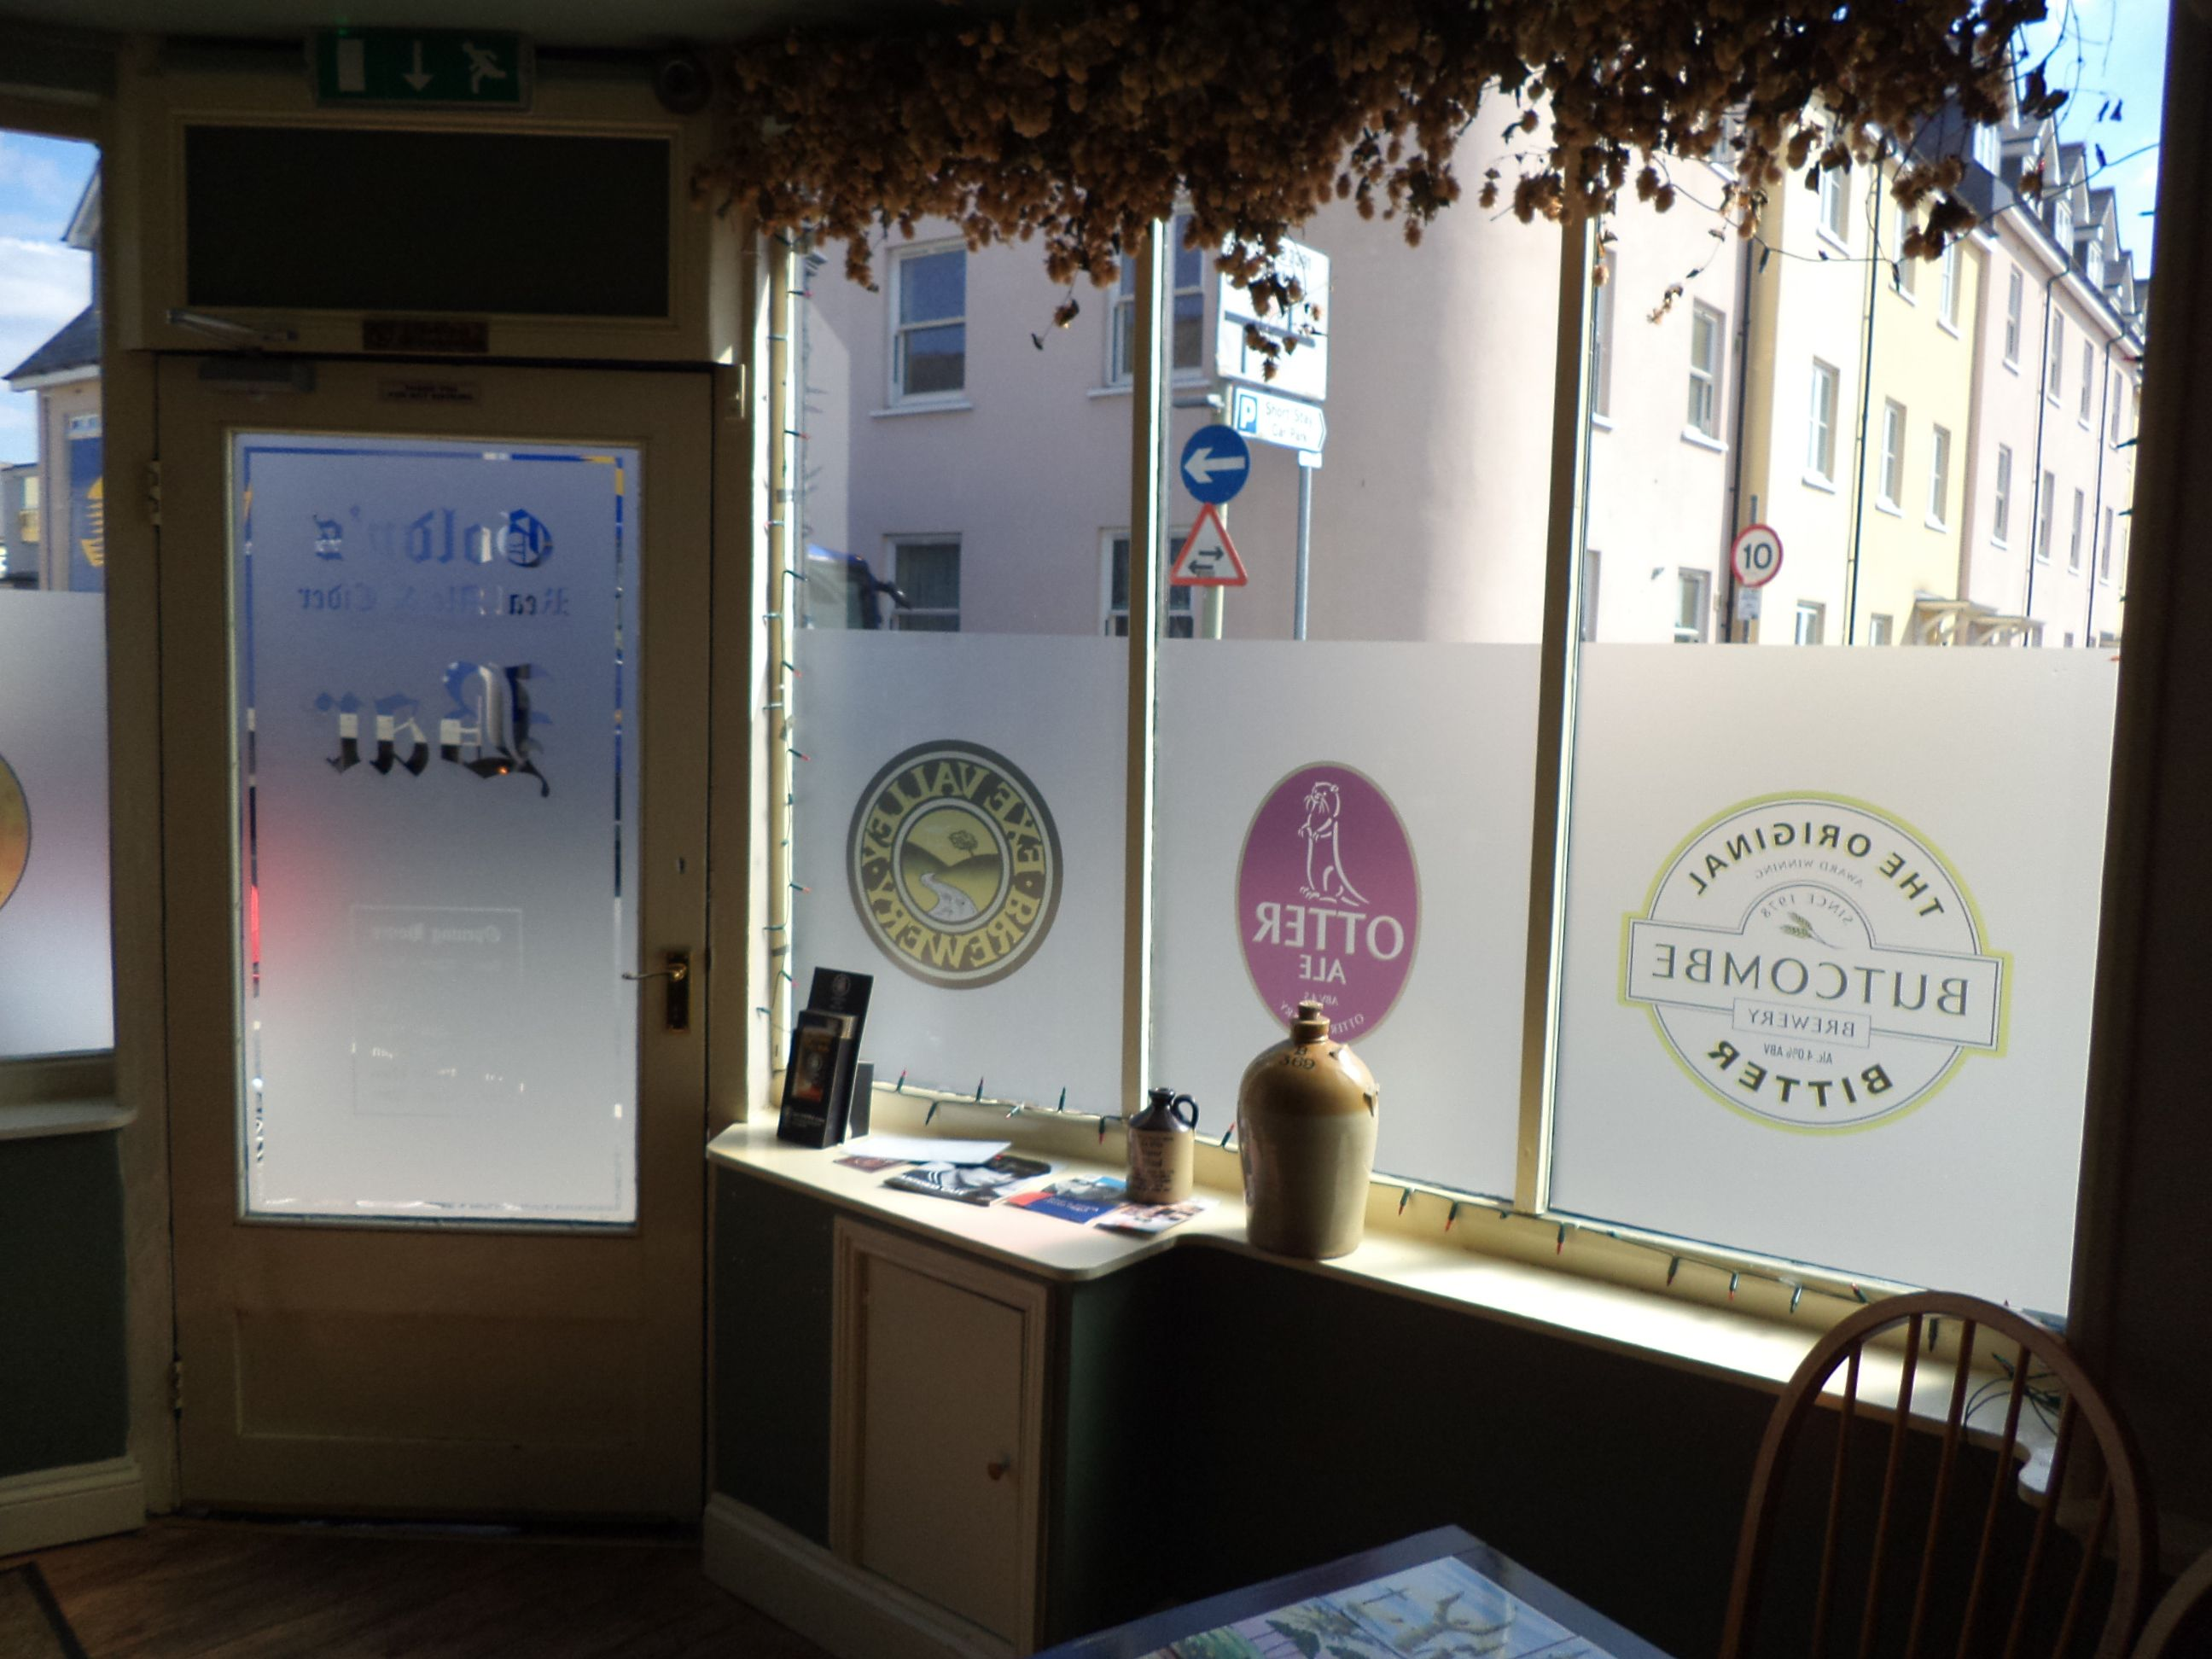 Pin By Gyeong Moon On Internal Window Window Graphics Shop Window Design Storefront Signage